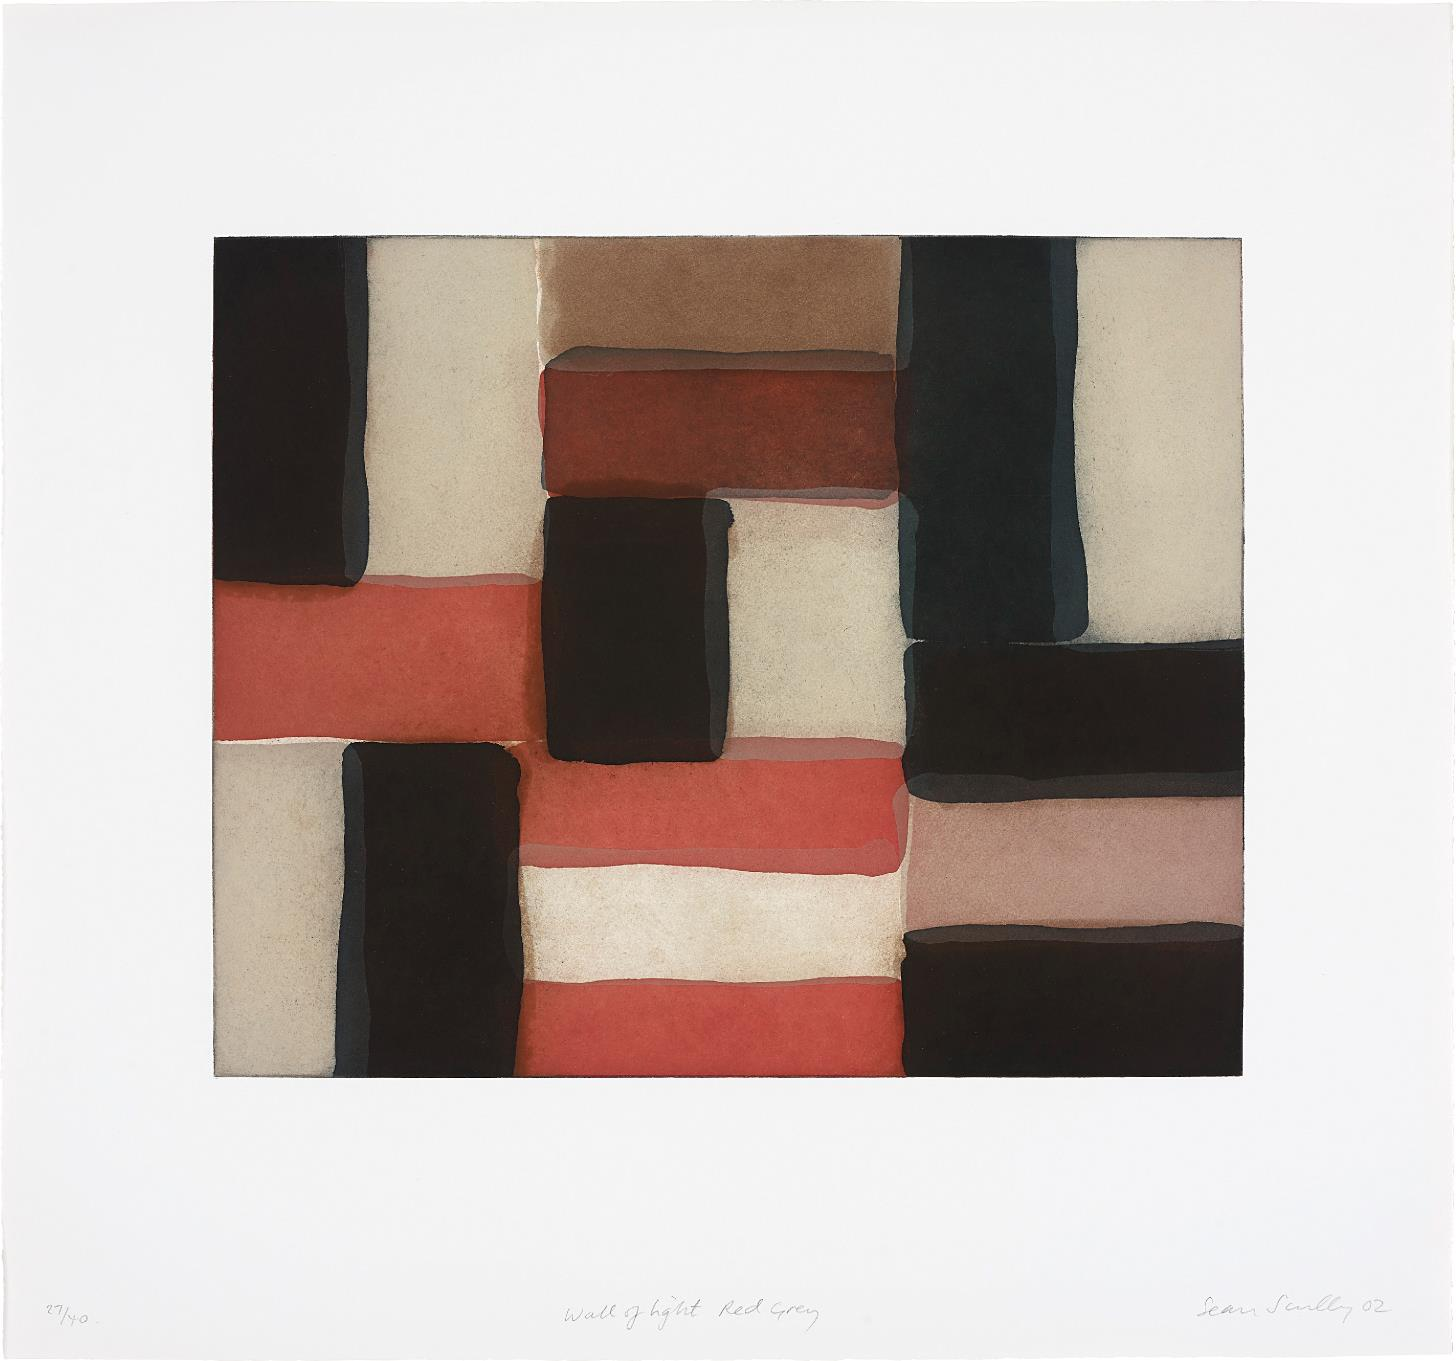 Sean Scully-Wall of Light Red Grey-2002